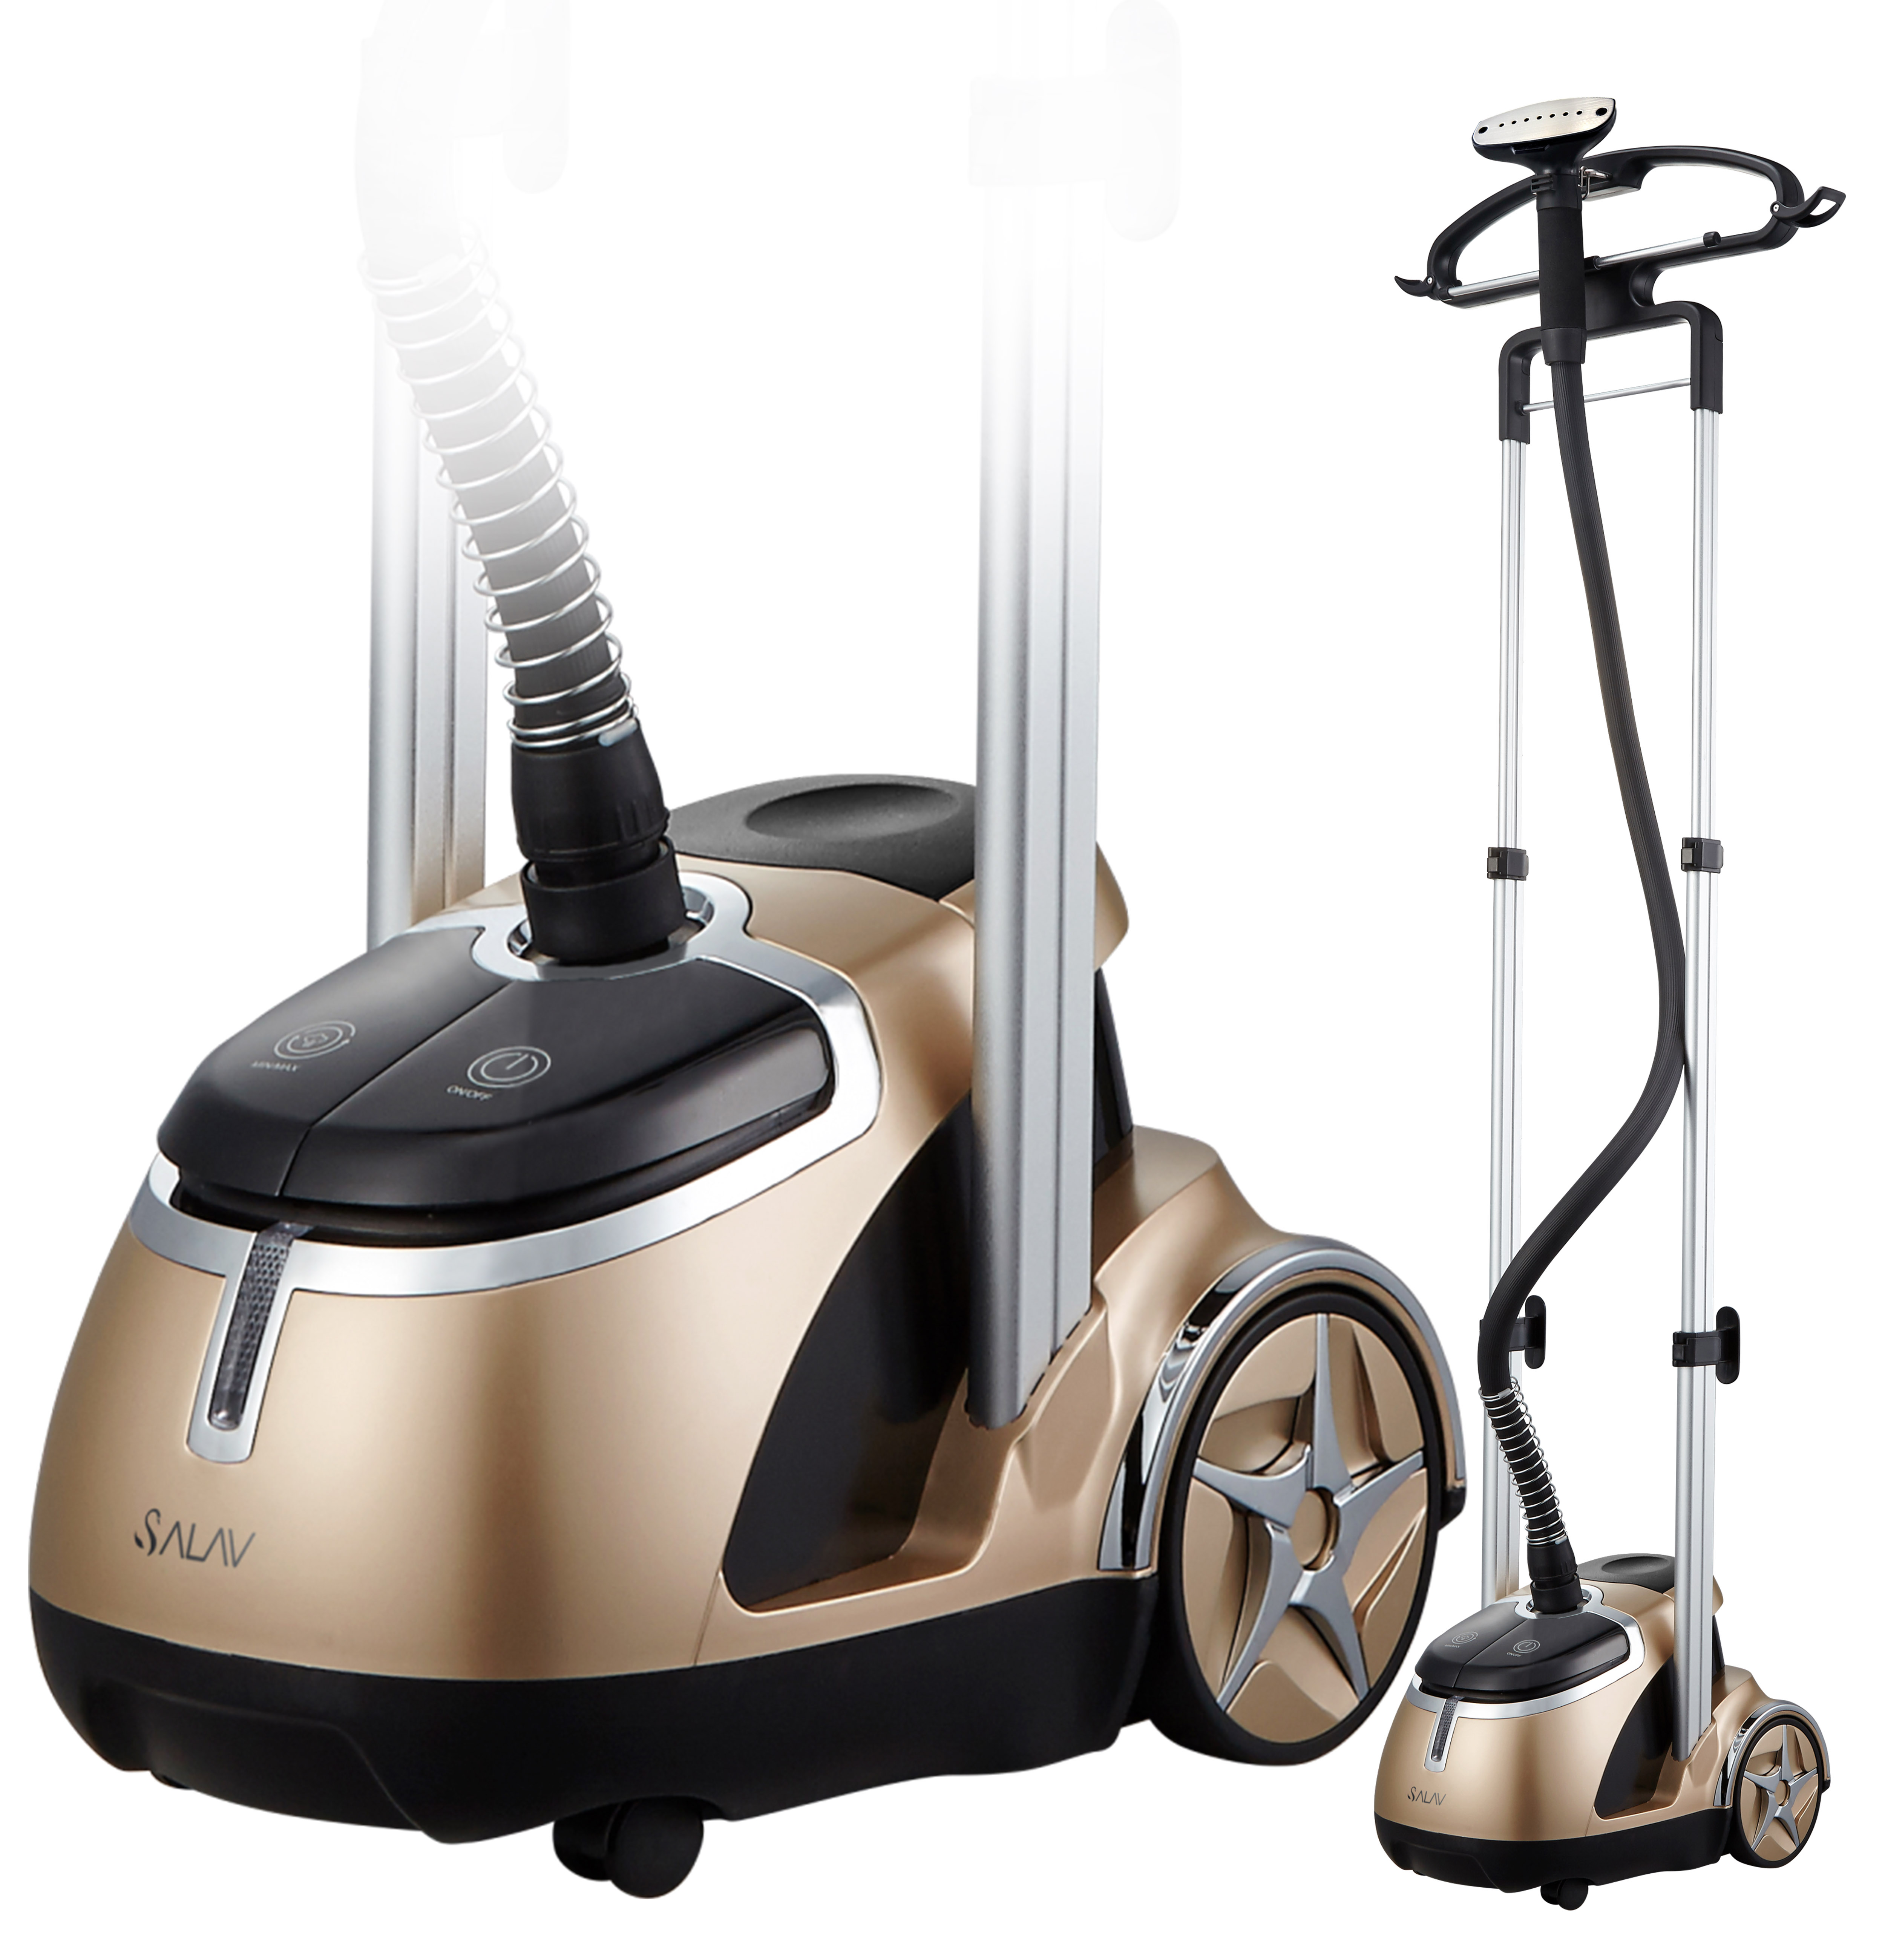 SALAV GS49-DJ Garment Steamer w Stainless Steel Nozzle & Foot Pedal Controls, Gold by Salav